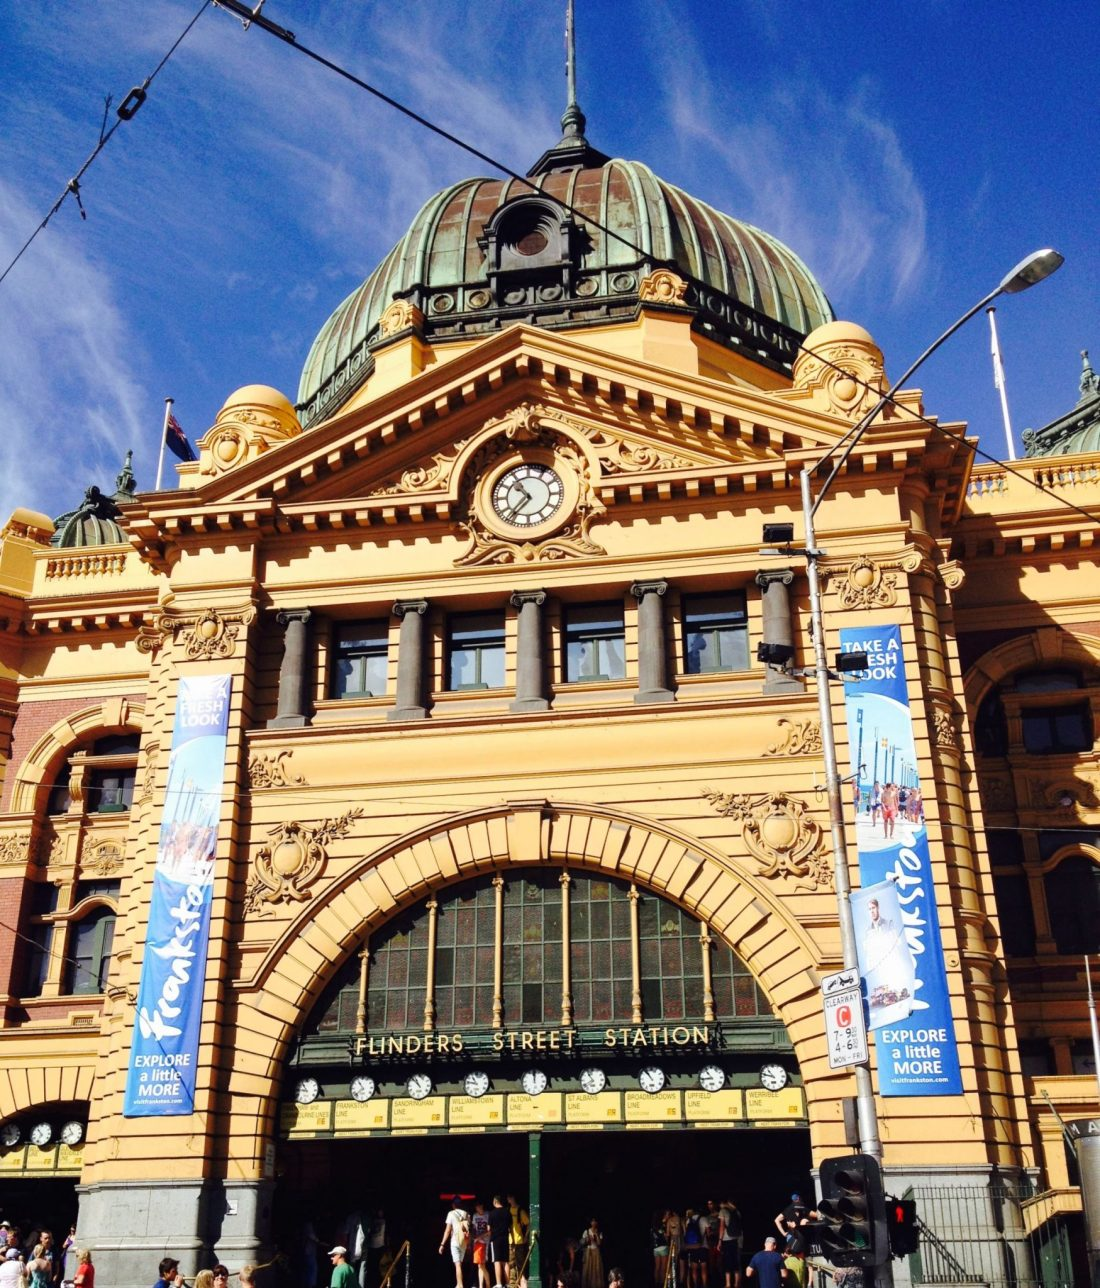 My top travel destinations: Flinders Street Station, Melbourne, Victoria